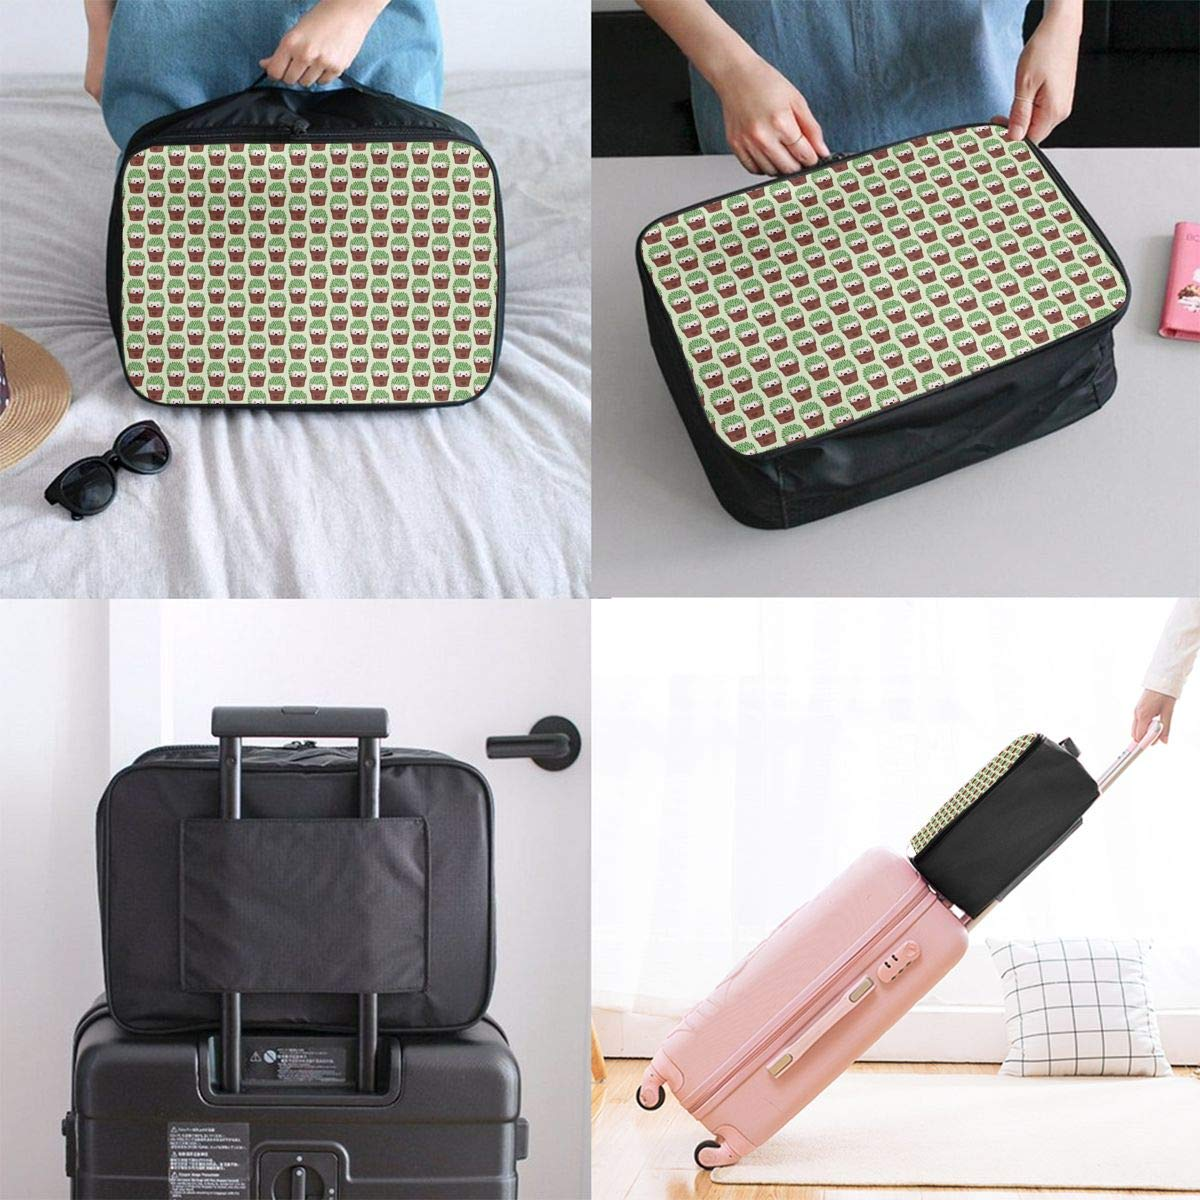 Hedgehog Potted Travel Pouch Carry-on Duffle Bag Lightweight Waterproof Portable Luggage Bag Attach To Suitcase